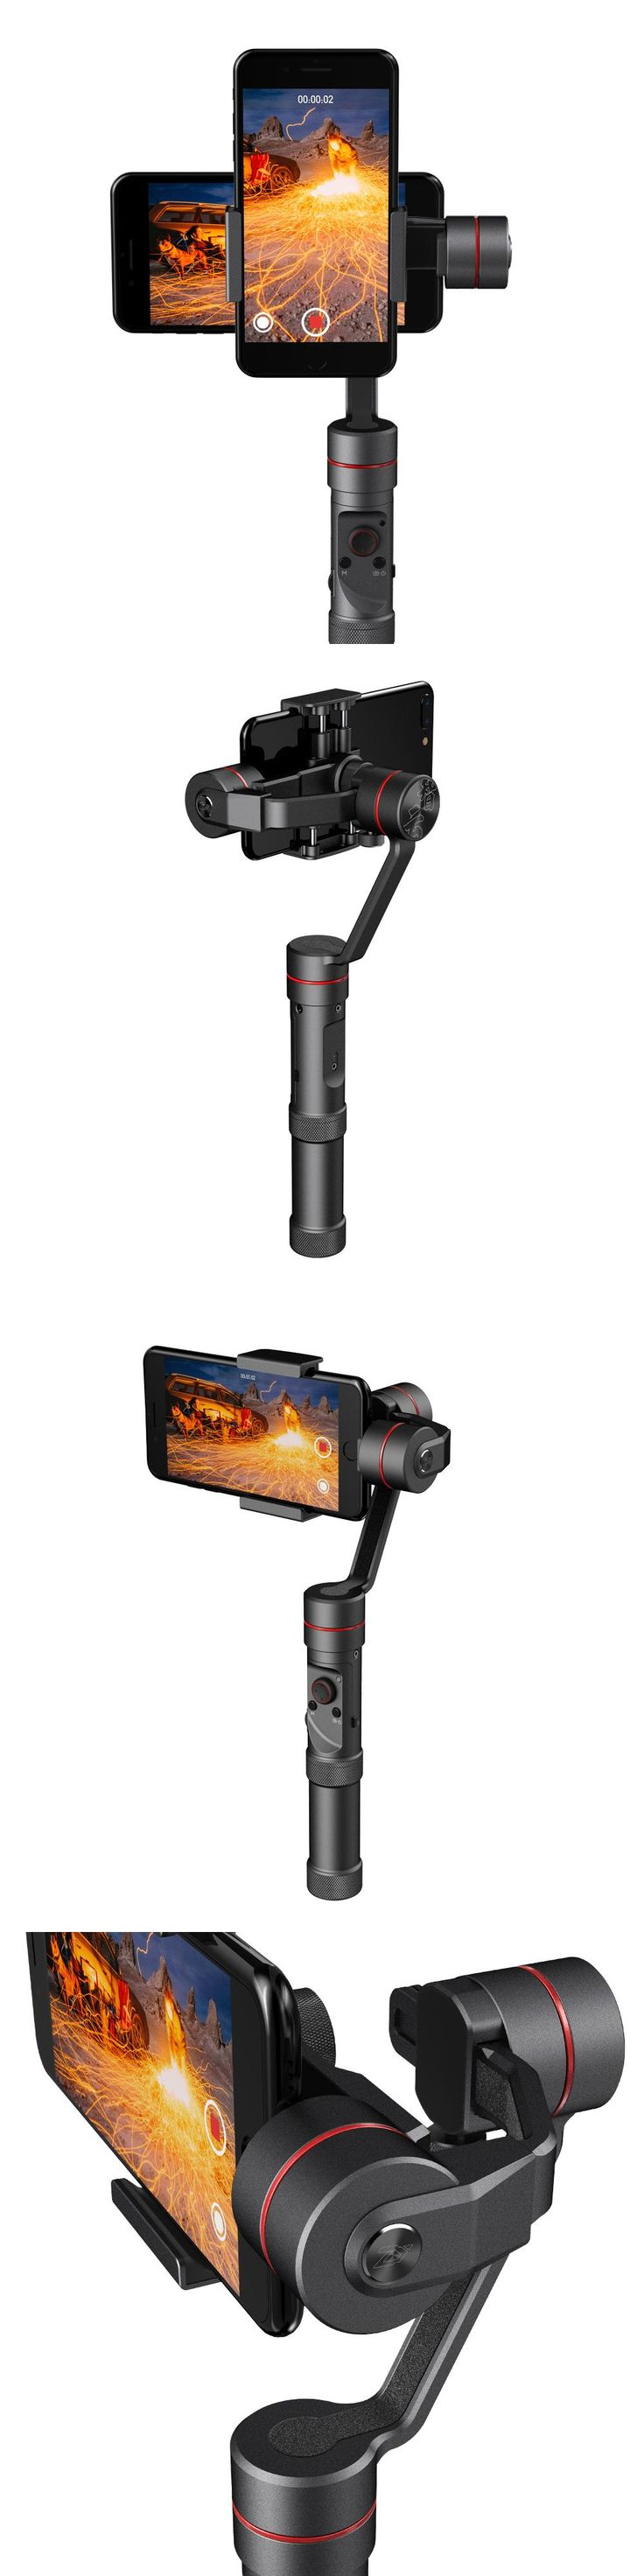 Newest Zhiyun Smooth - III 3 Handheld Gimbal Stabilizer for Smartphones Gopro Action cameras Support 260g